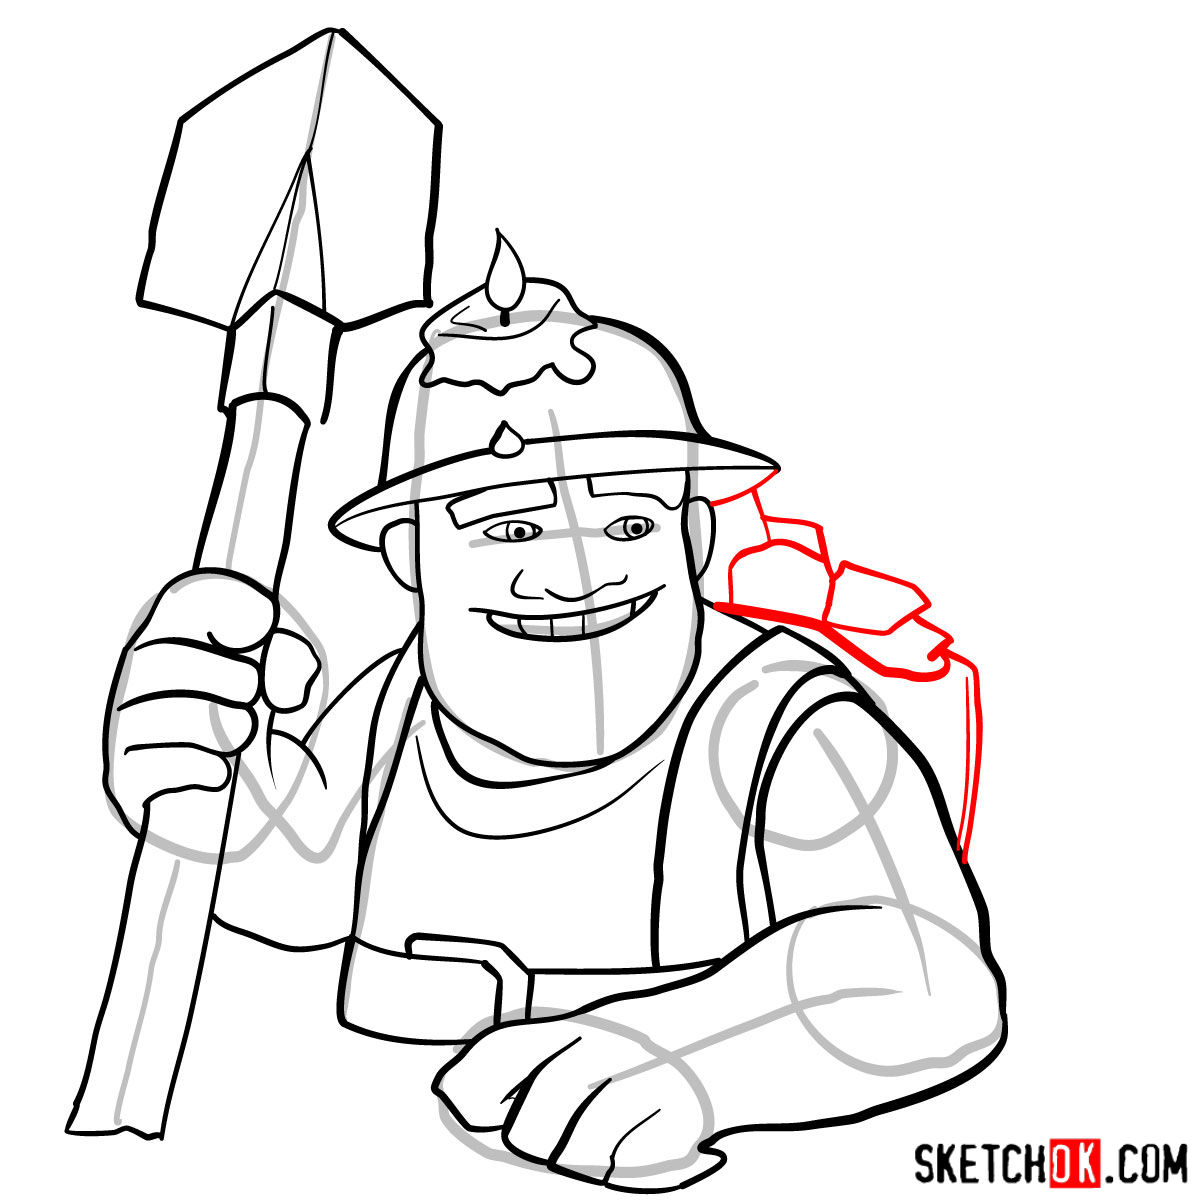 How to draw Miner from Clash of Clans game - step 12